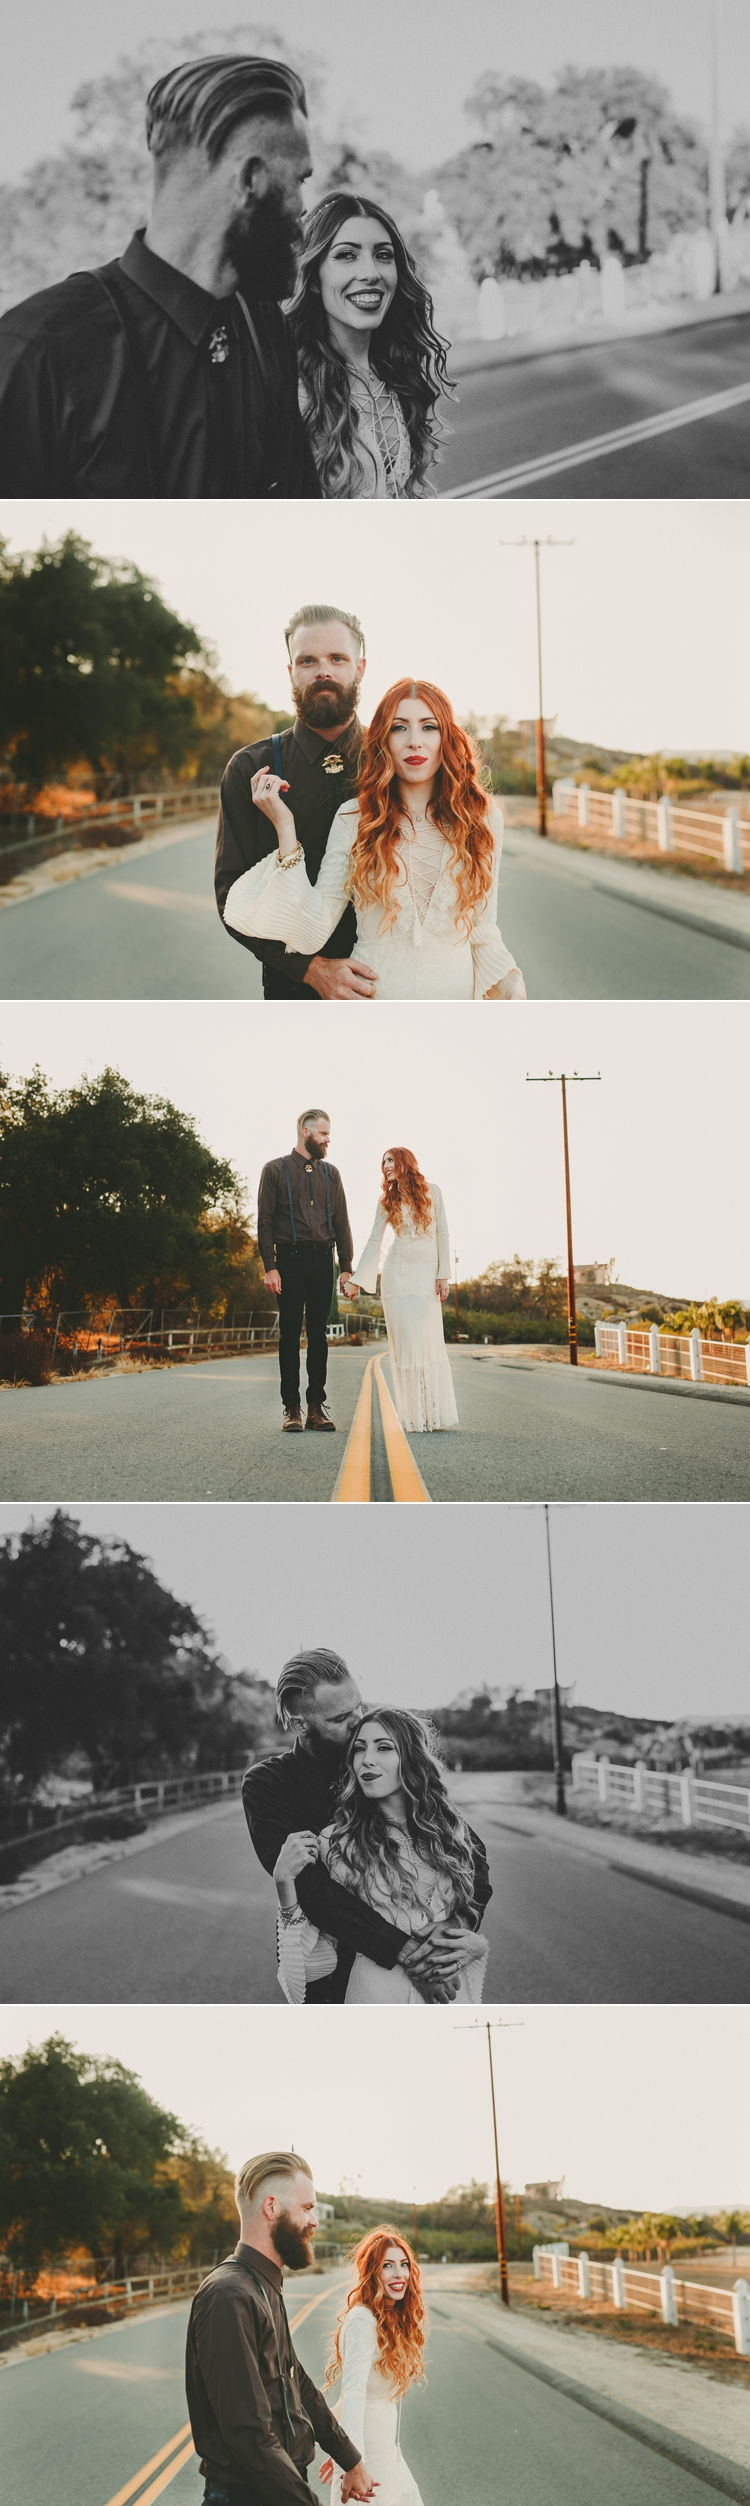 woodstock-inspired-wedding-photos-24